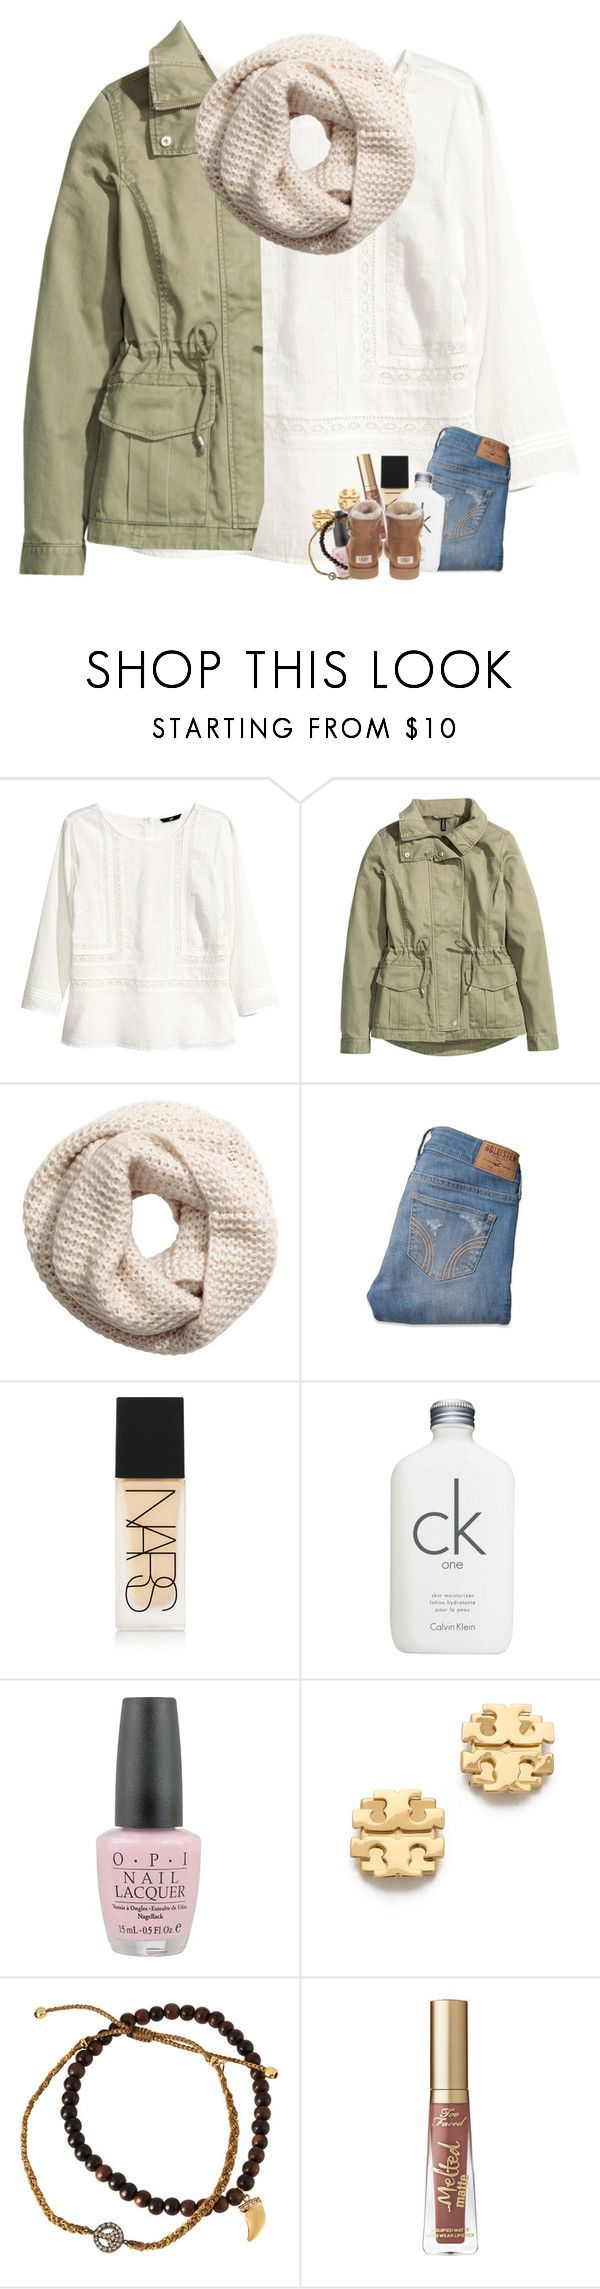 """""""fall h&m vibes"""" by madelinelurene ❤ liked on Polyvore featuring H&M, Hollister Co., NARS Cosmetics, Calvin Klein, OPI, Tory Burch, Tai, Too Faced Cosmetics and UGG Australia"""